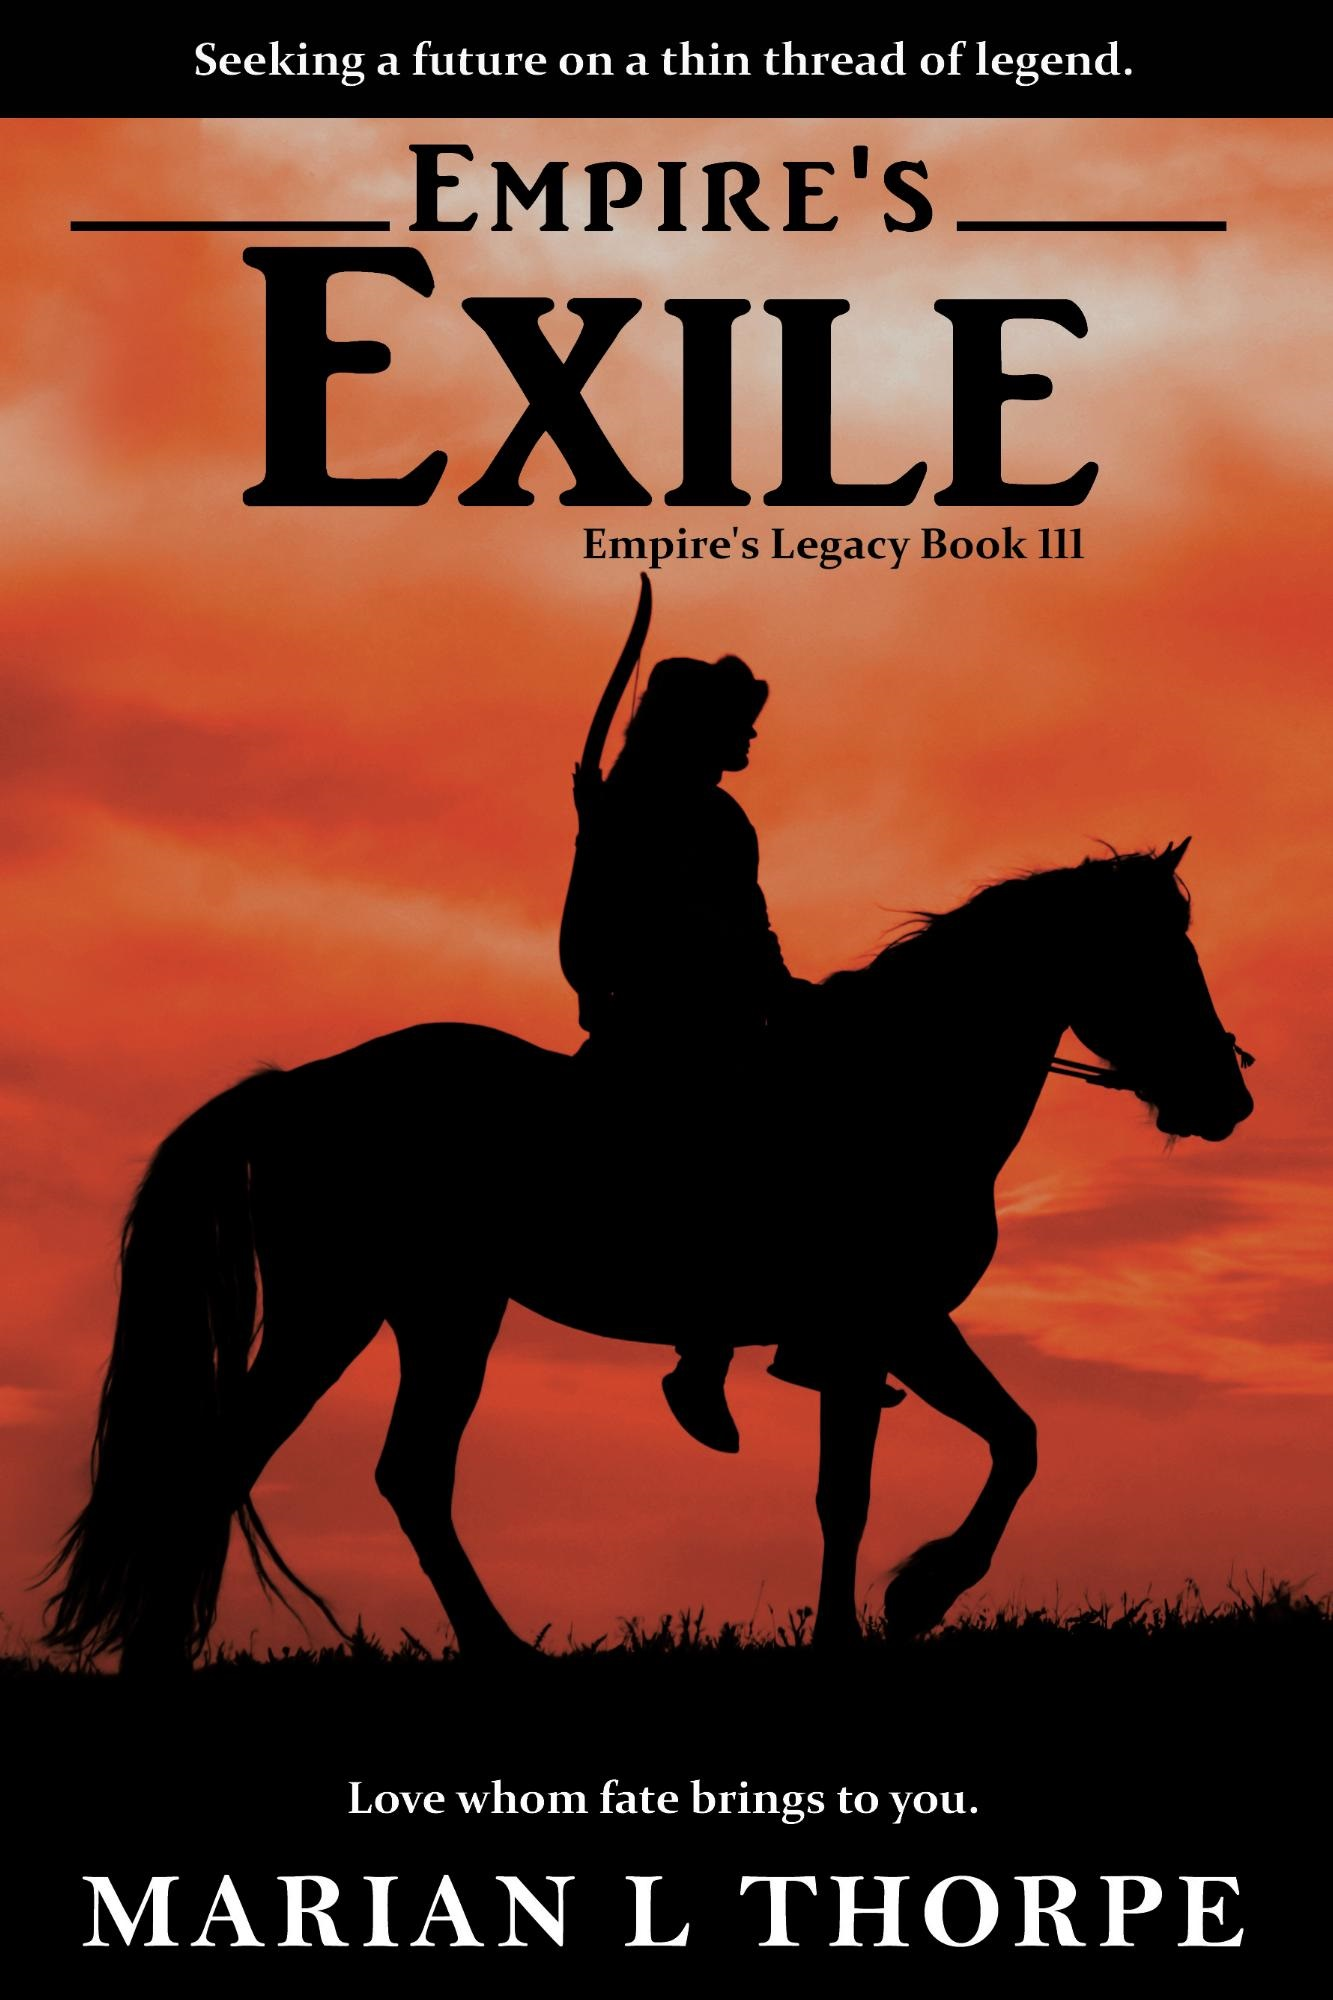 Empires_Exile_Cover_for_Kindle.jpg